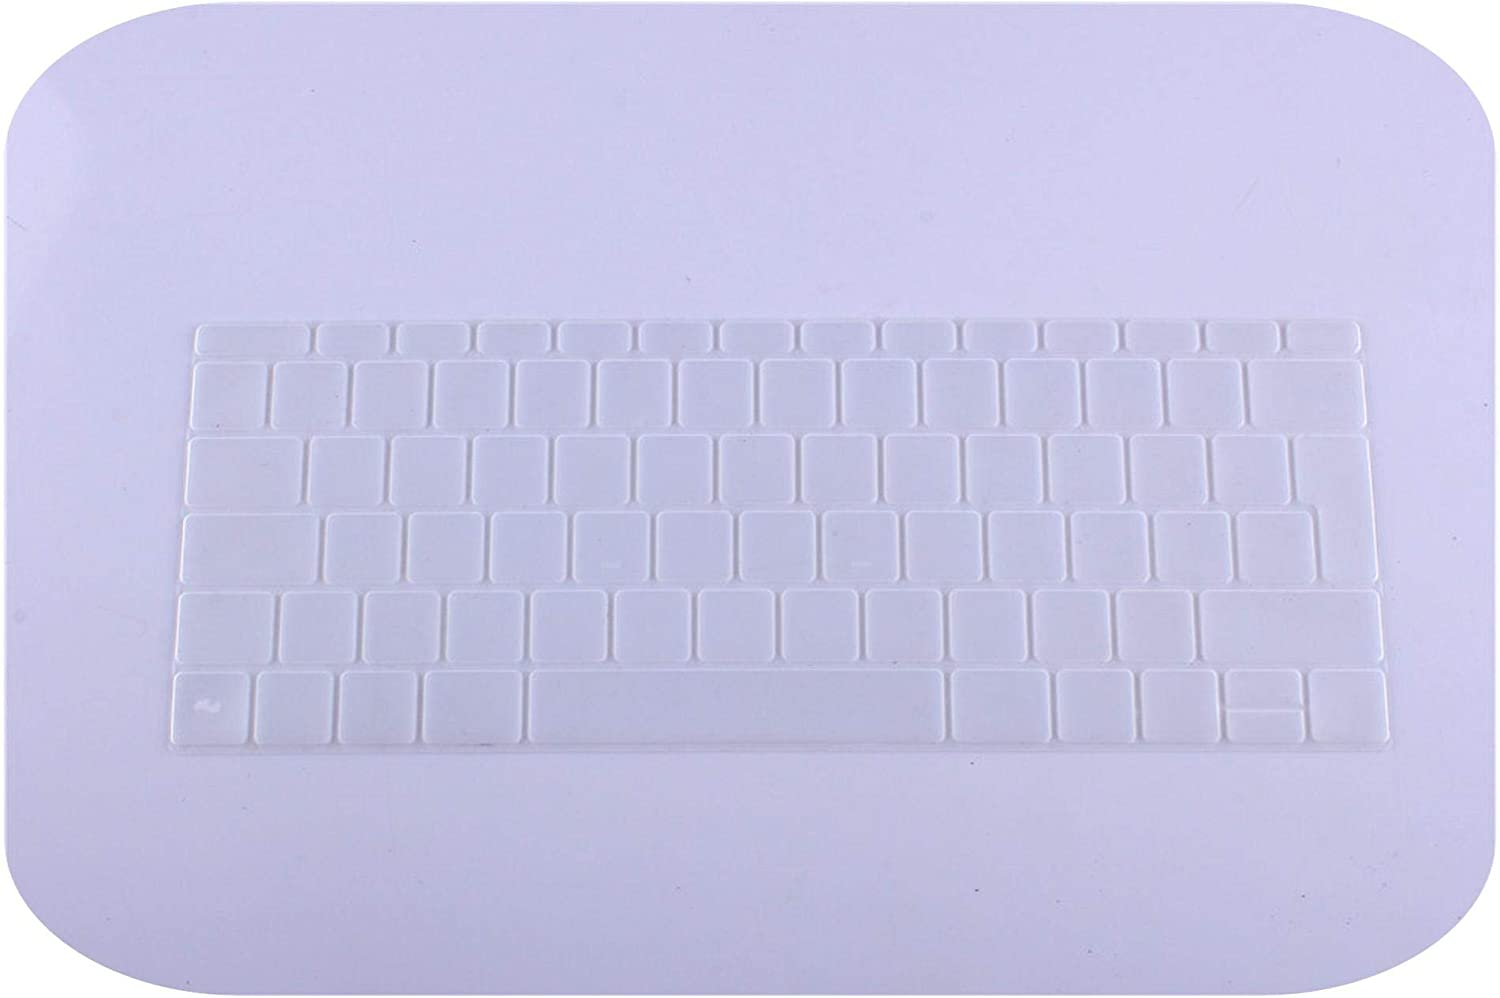 Spanish EU Silicone Keyboard Protector Cover Skin Protective Film for Mac Book 12 inch pro13 Colorful Keyboard Film Spain-H